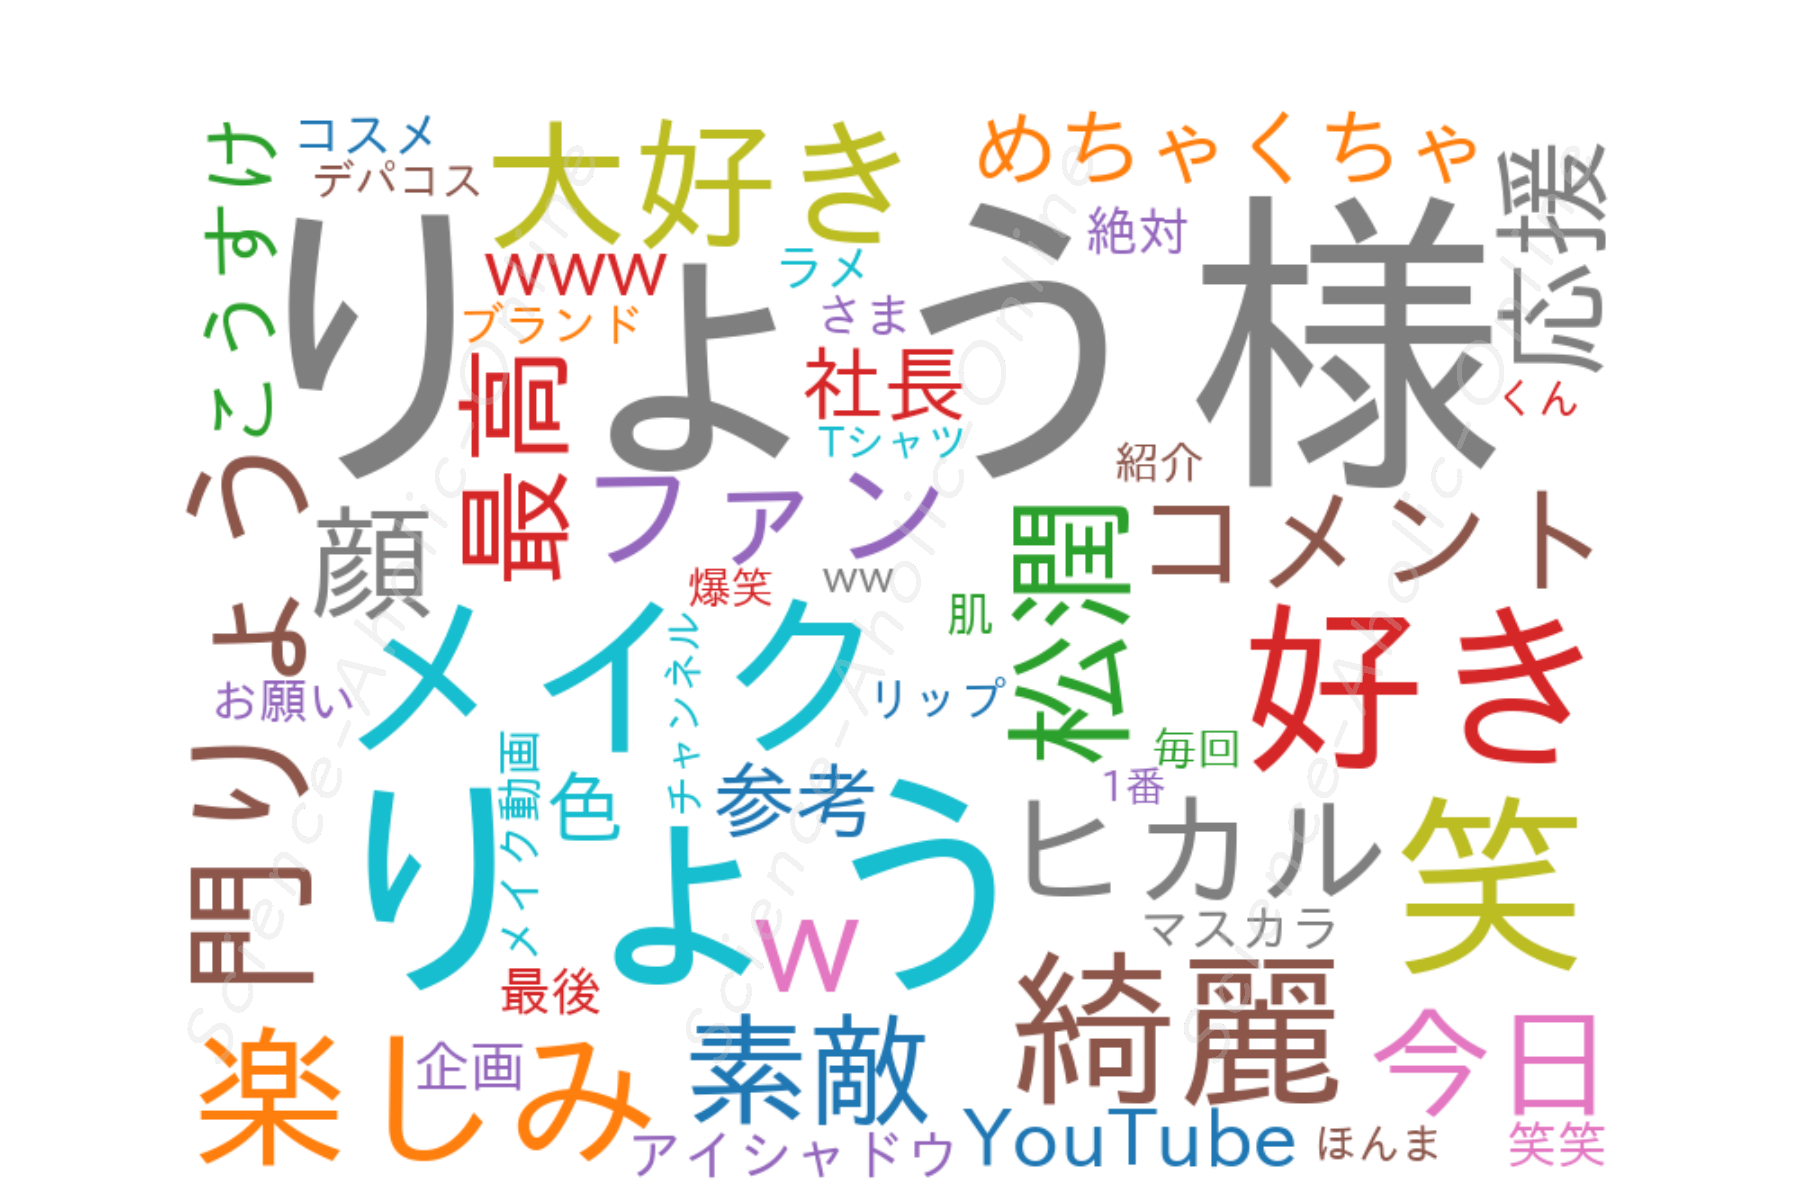 https://science-aholic-online.com/wp-content/uploads/2020/08/wordcloud_門りょうチャンネル.png